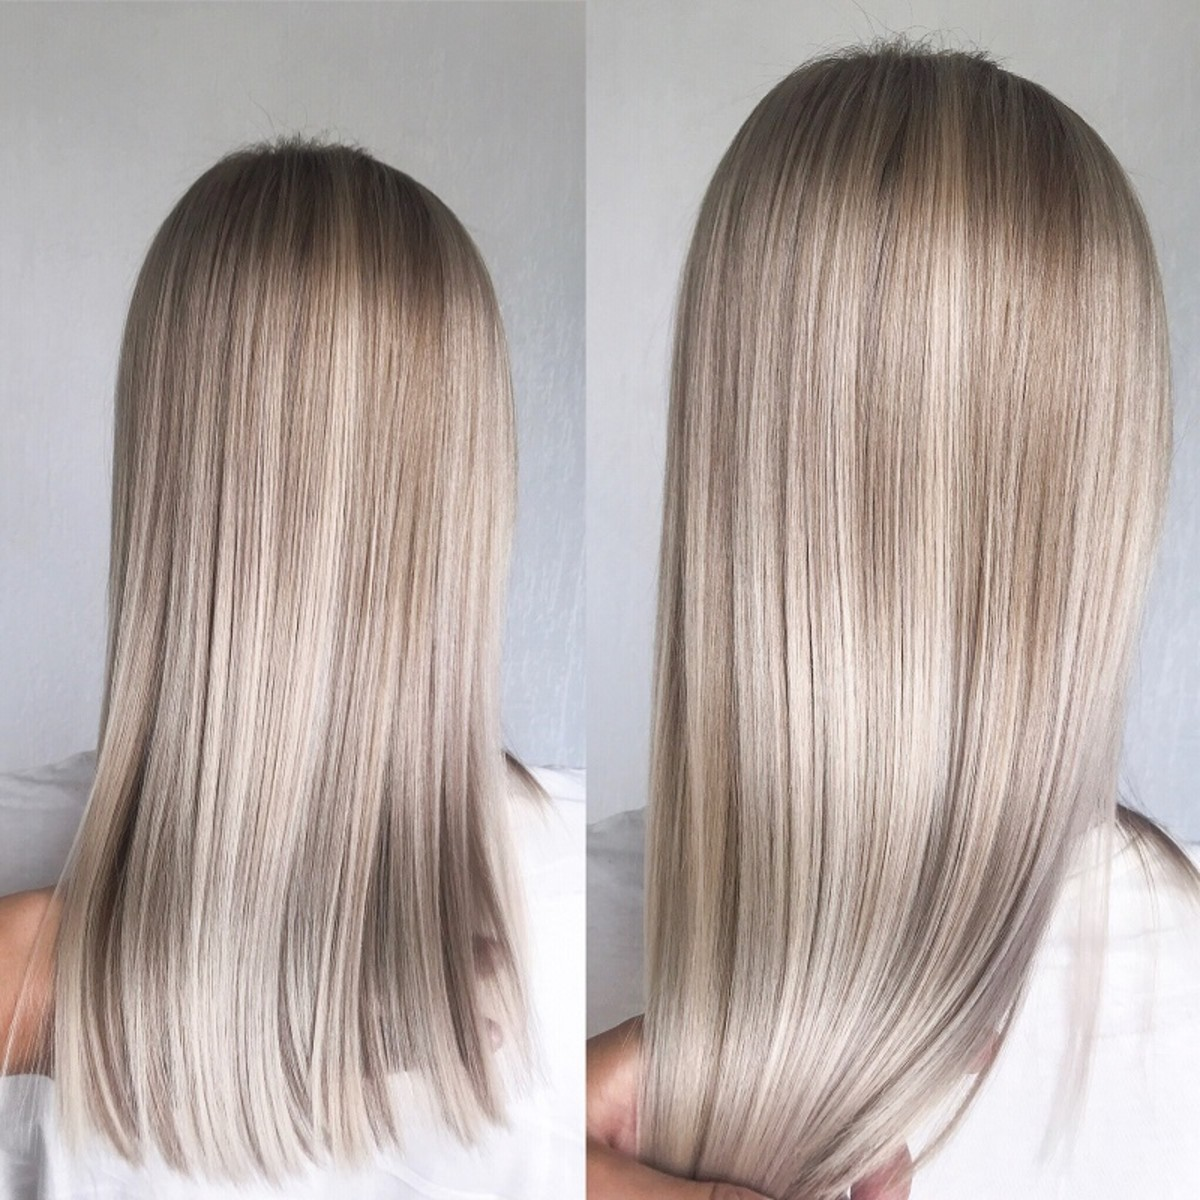 Acidic products like conditioner help to normalize your hair's structure again after lightening for a smoother and shinier appearance.